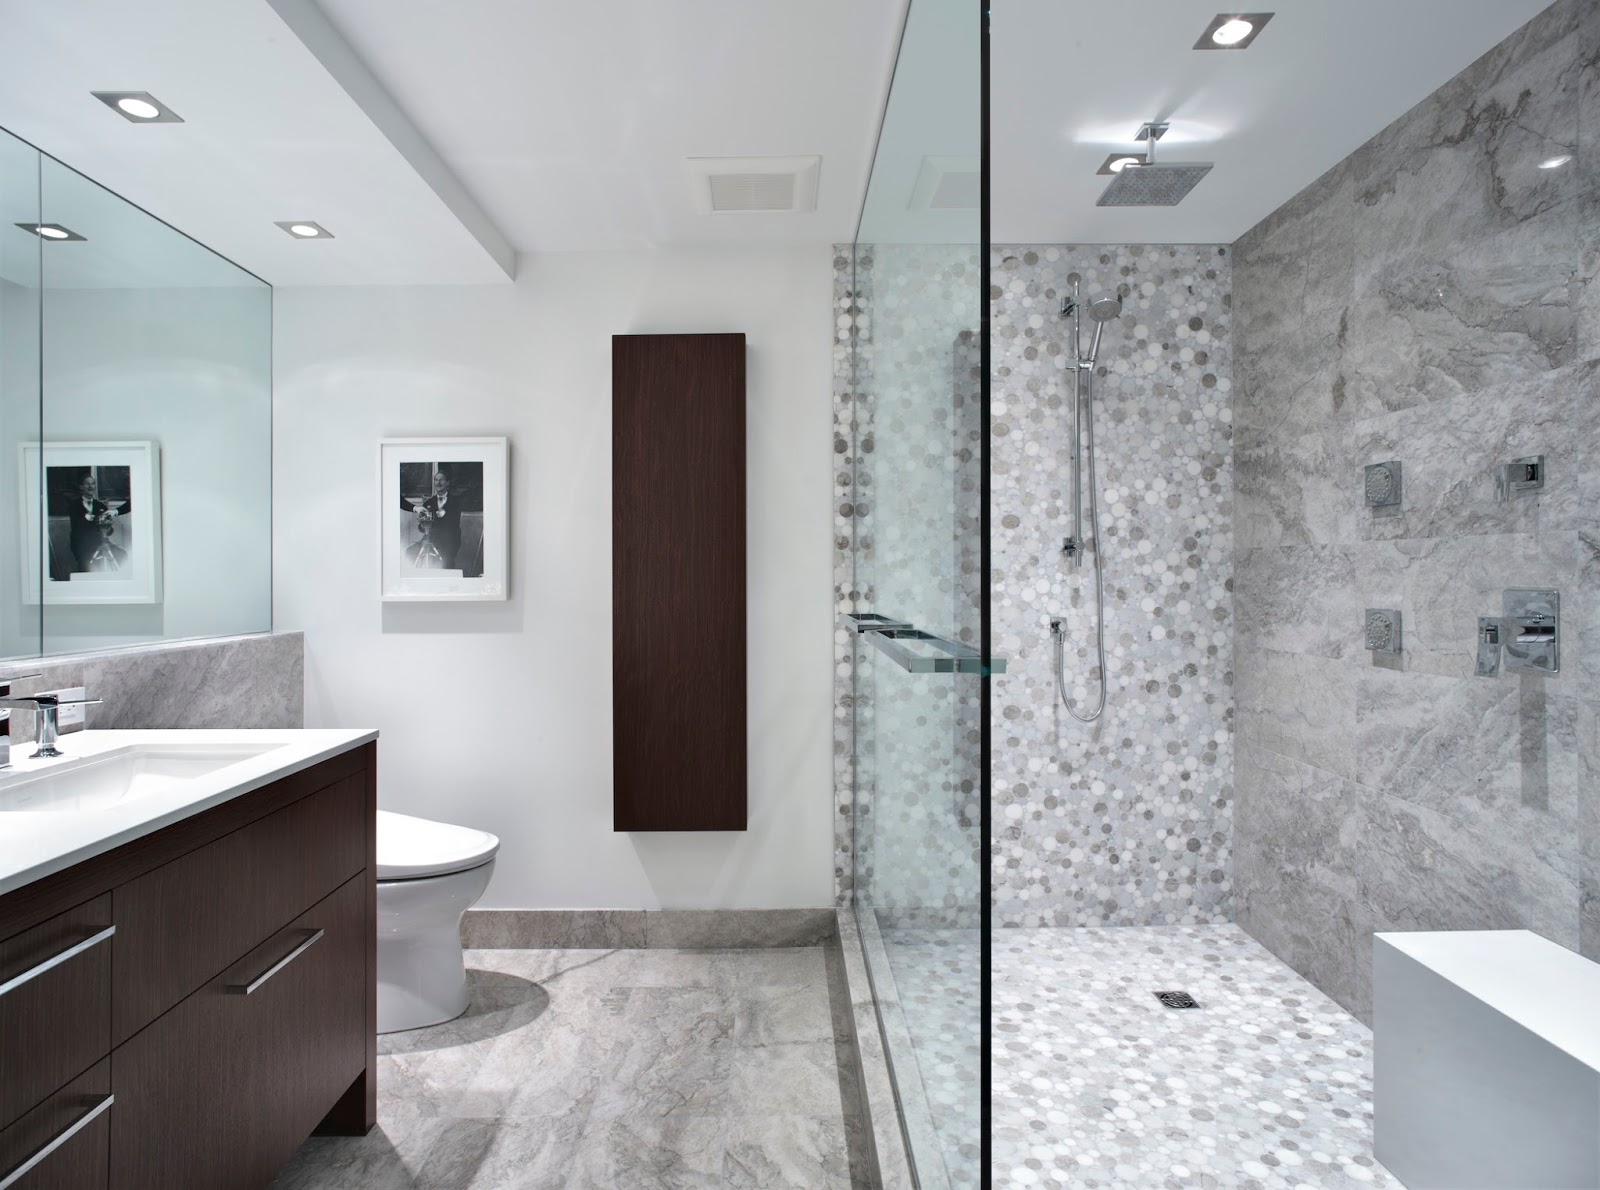 Patricia gray interior design blog 1st place 39 best for Bathroom design vancouver